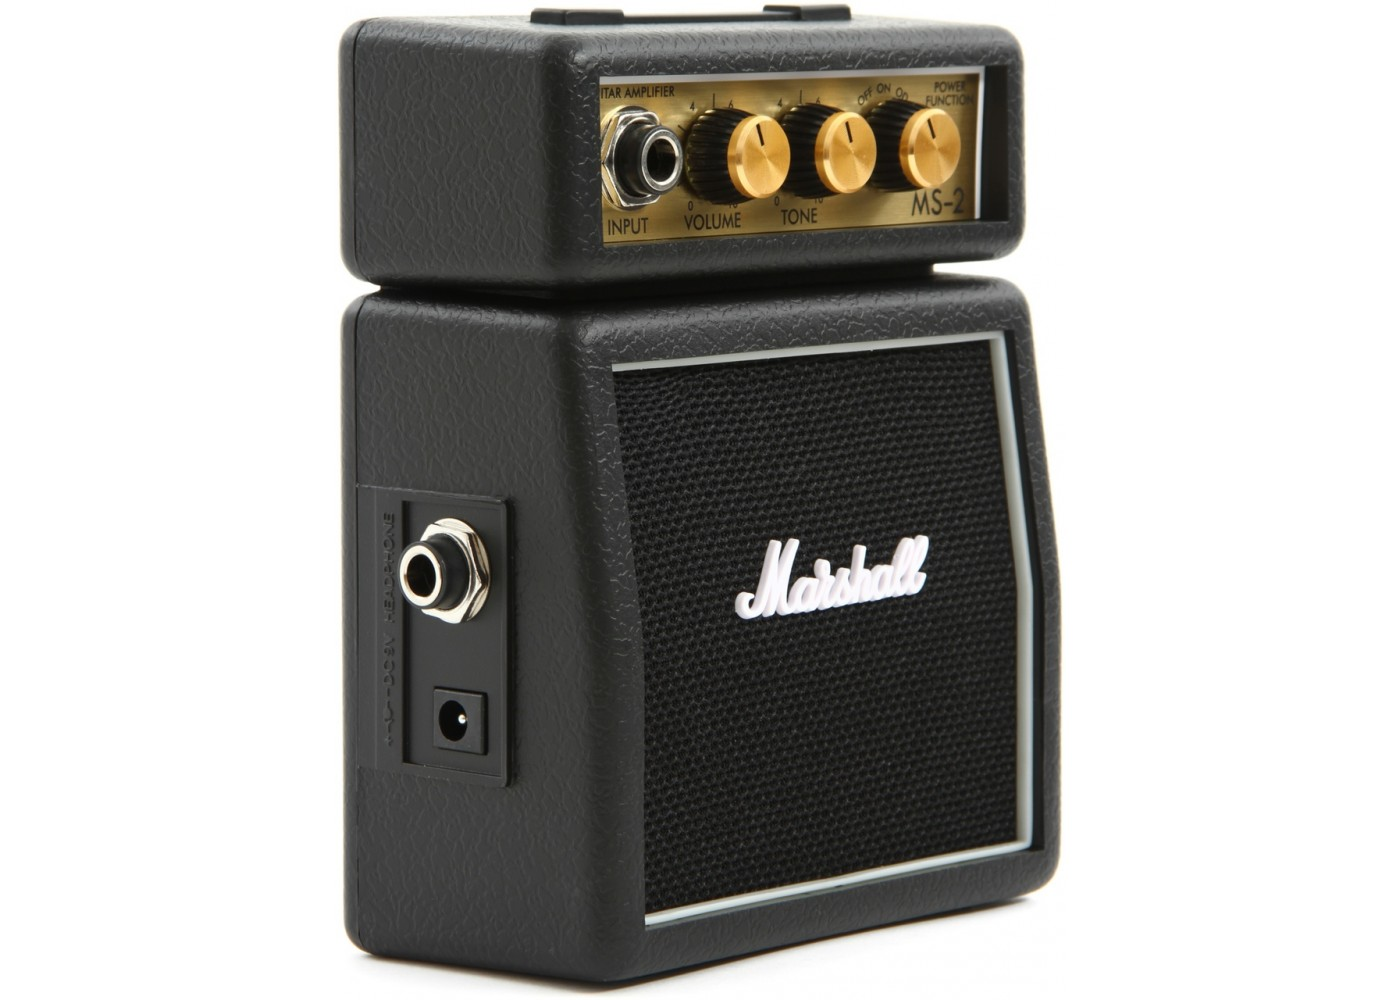 marshall ms 2 mini practice guitar amplifier. Black Bedroom Furniture Sets. Home Design Ideas